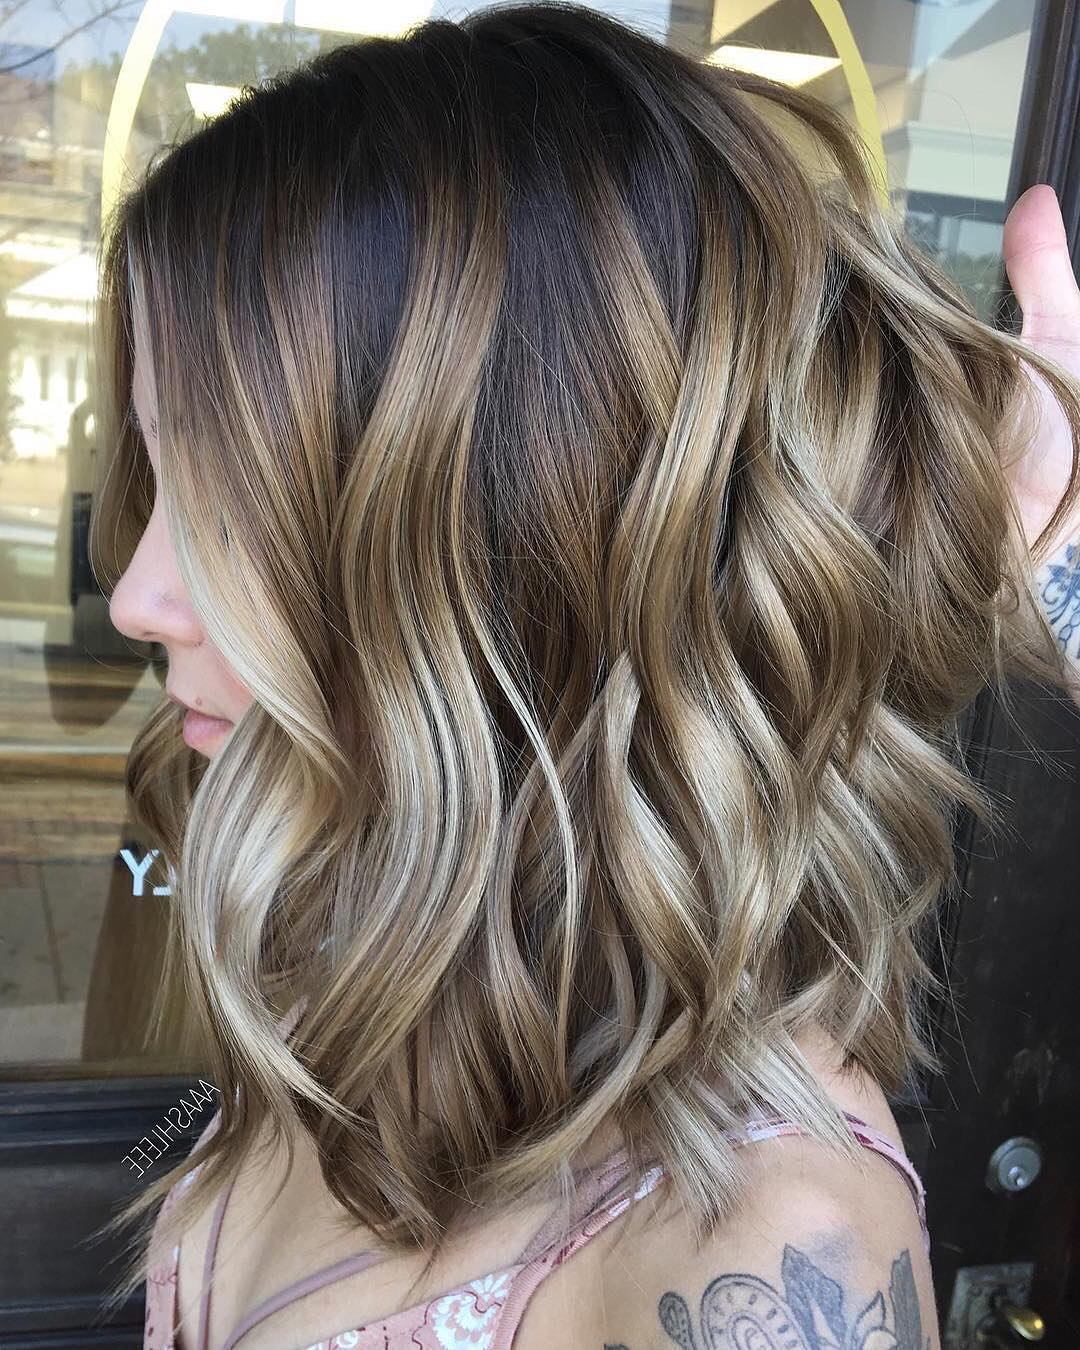 10 Ombre Balayage Hairstyles for Medium Length Hair, Hair